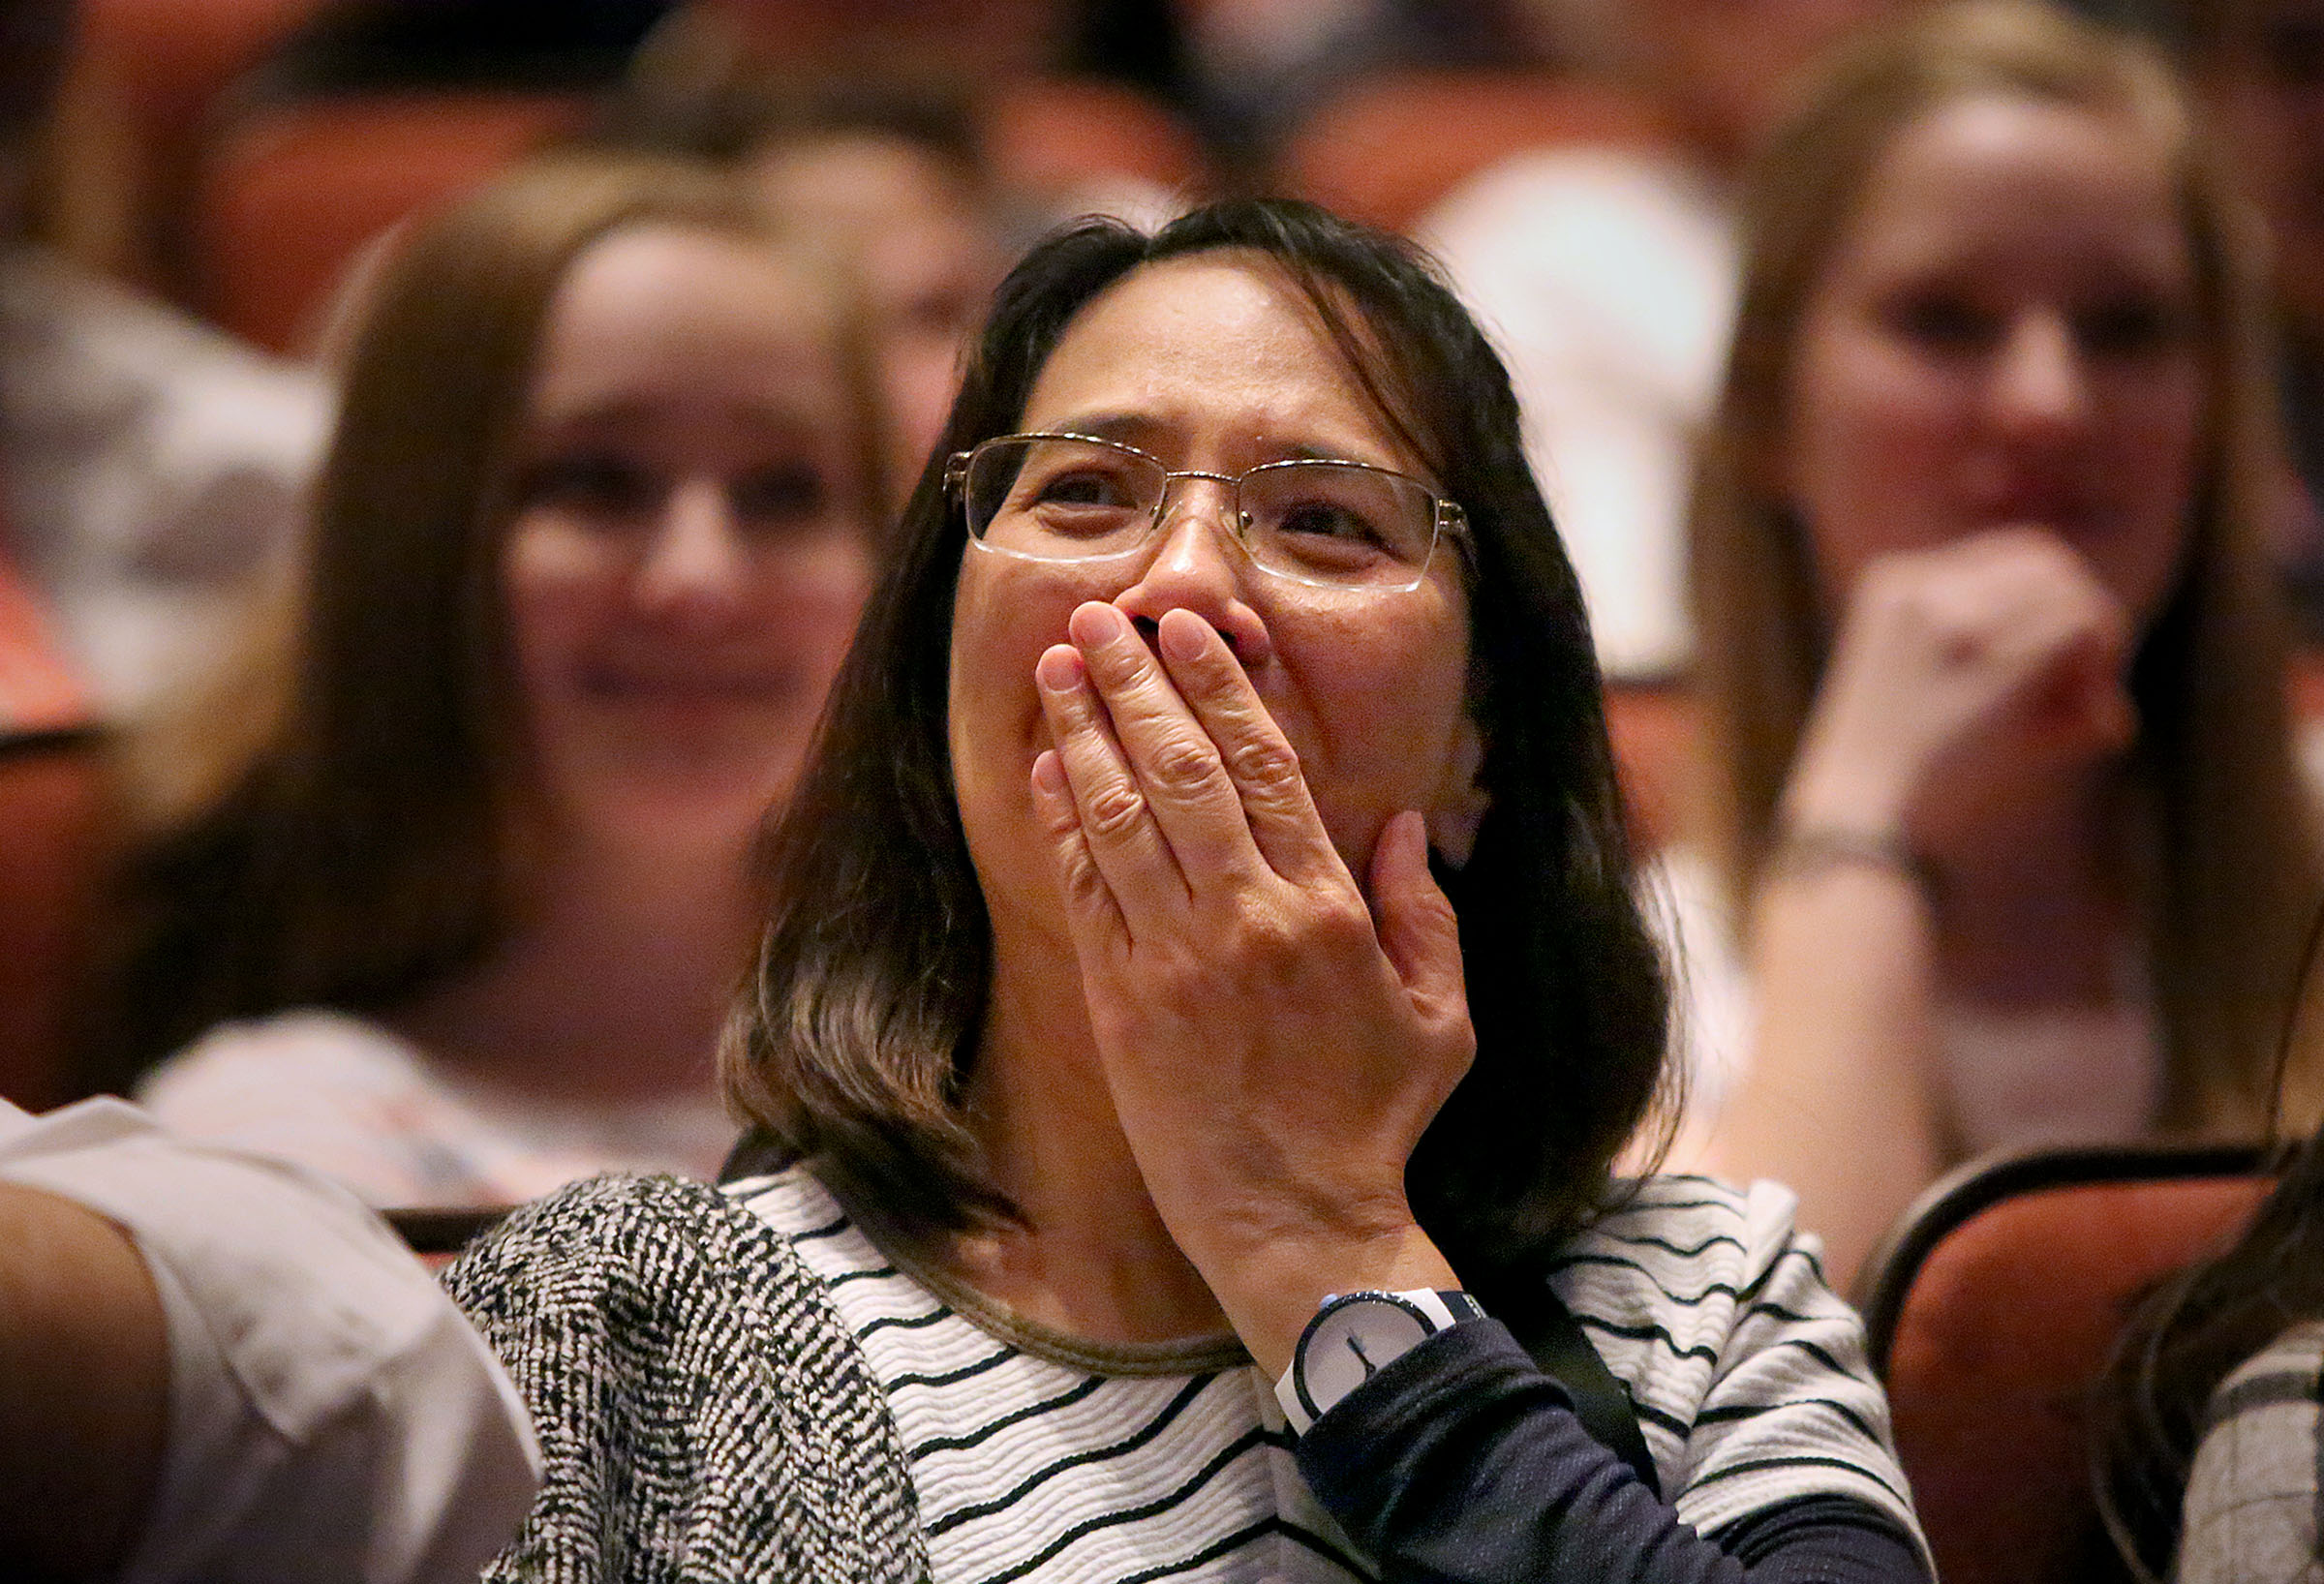 Cheryl Reyes reacts to President Russell M. Nelson's announcement that there will be seven new temples around the world during the Sunday afternoon session of the 188th Annual General Conference of The Church of Jesus Christ of Latter-day Saints at the Conference Center in Salt Lake City on Sunday, April 1, 2018.